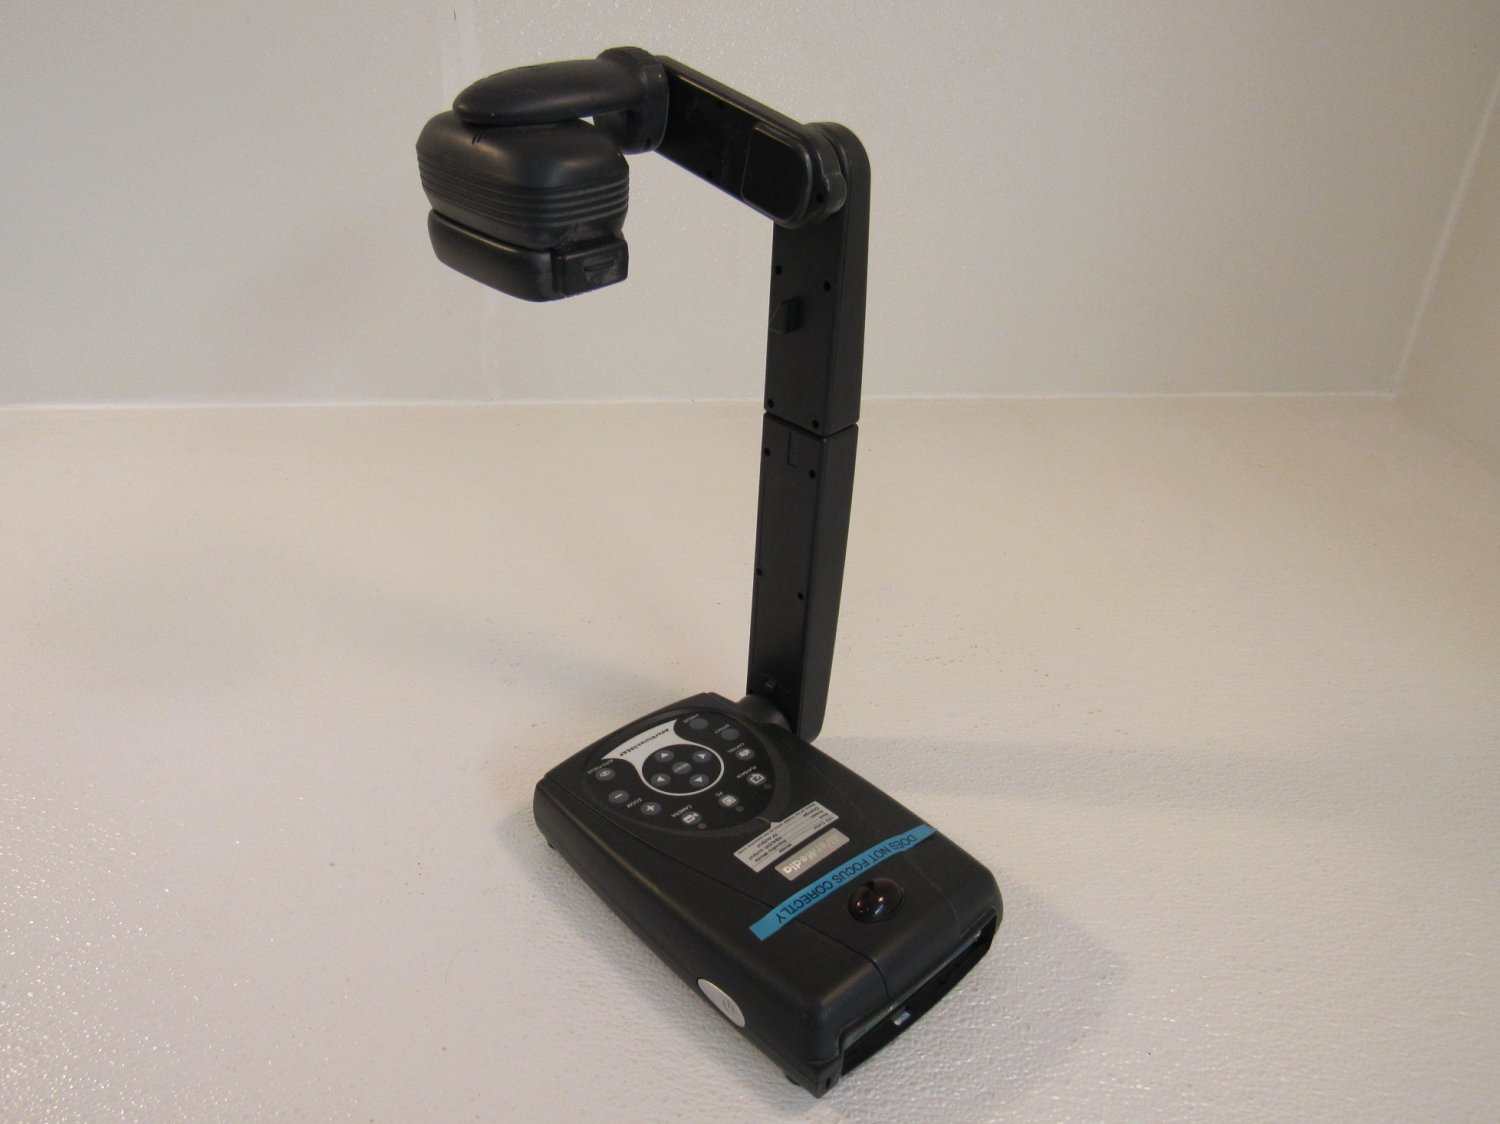 AverMedia Document Camera AverVision 3.2MP Black 300AF